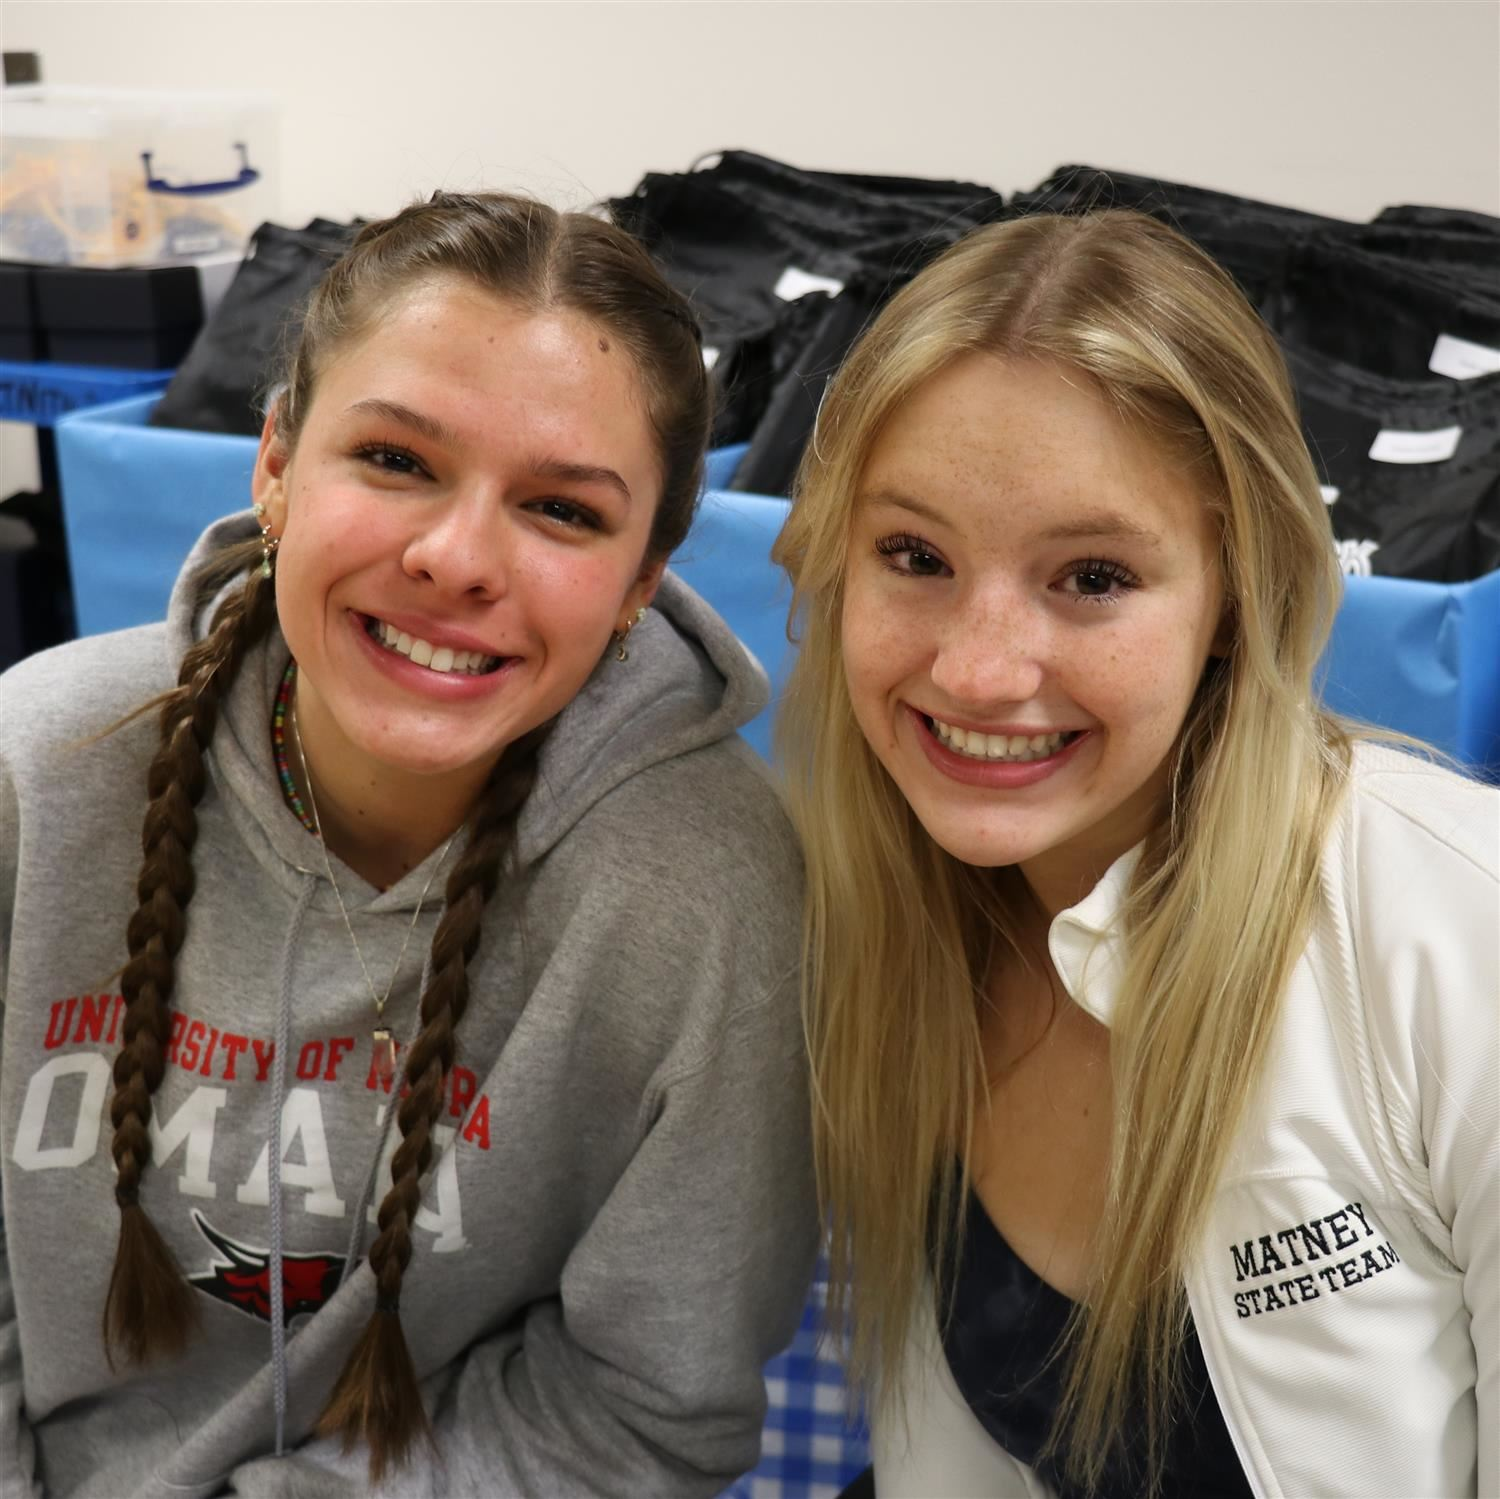 GHS student athletes Hailey Matthews and Julia Matney